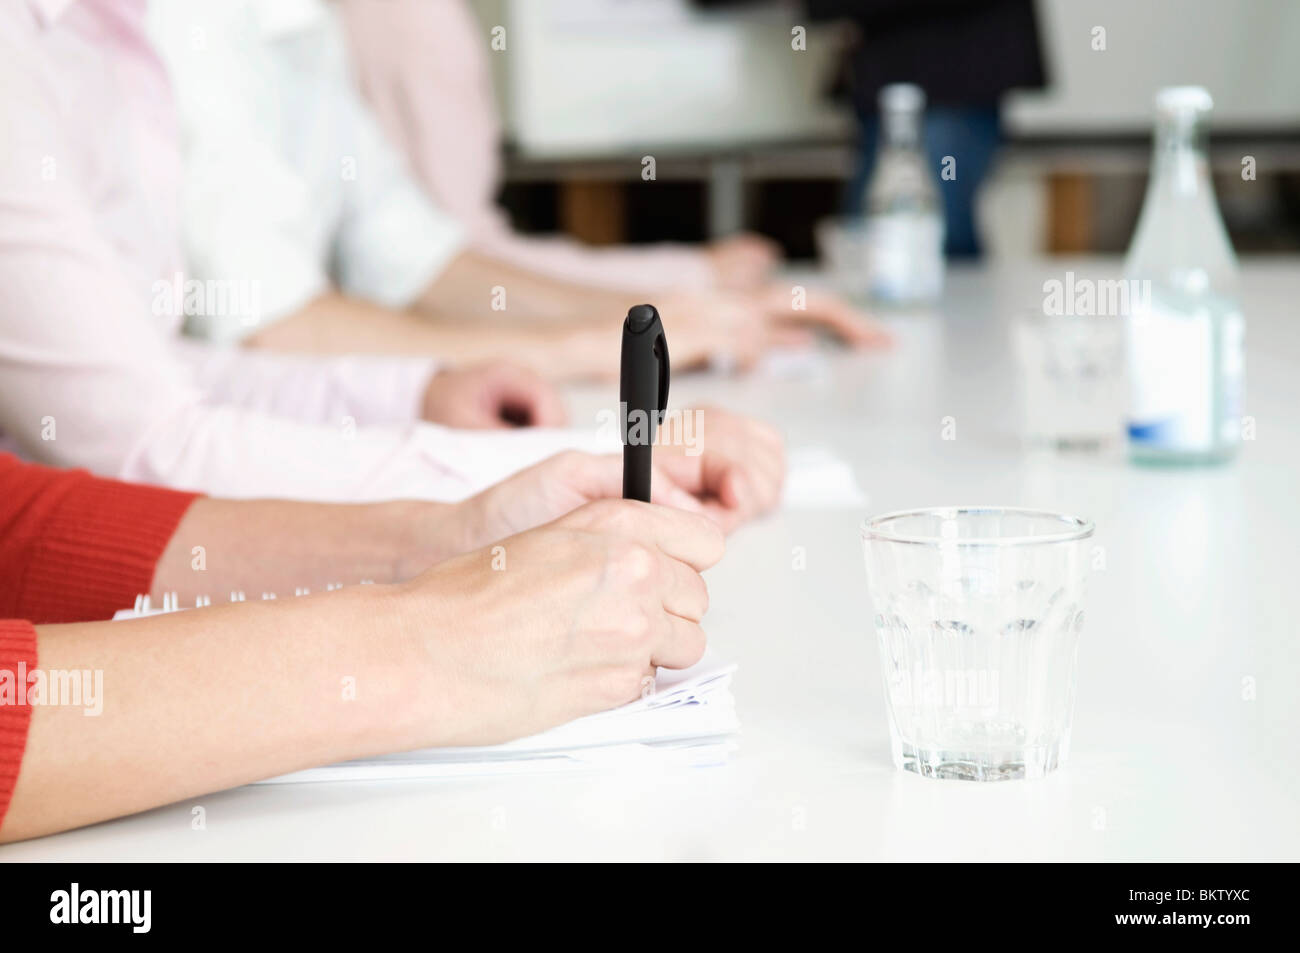 Taking notes - Stock Image